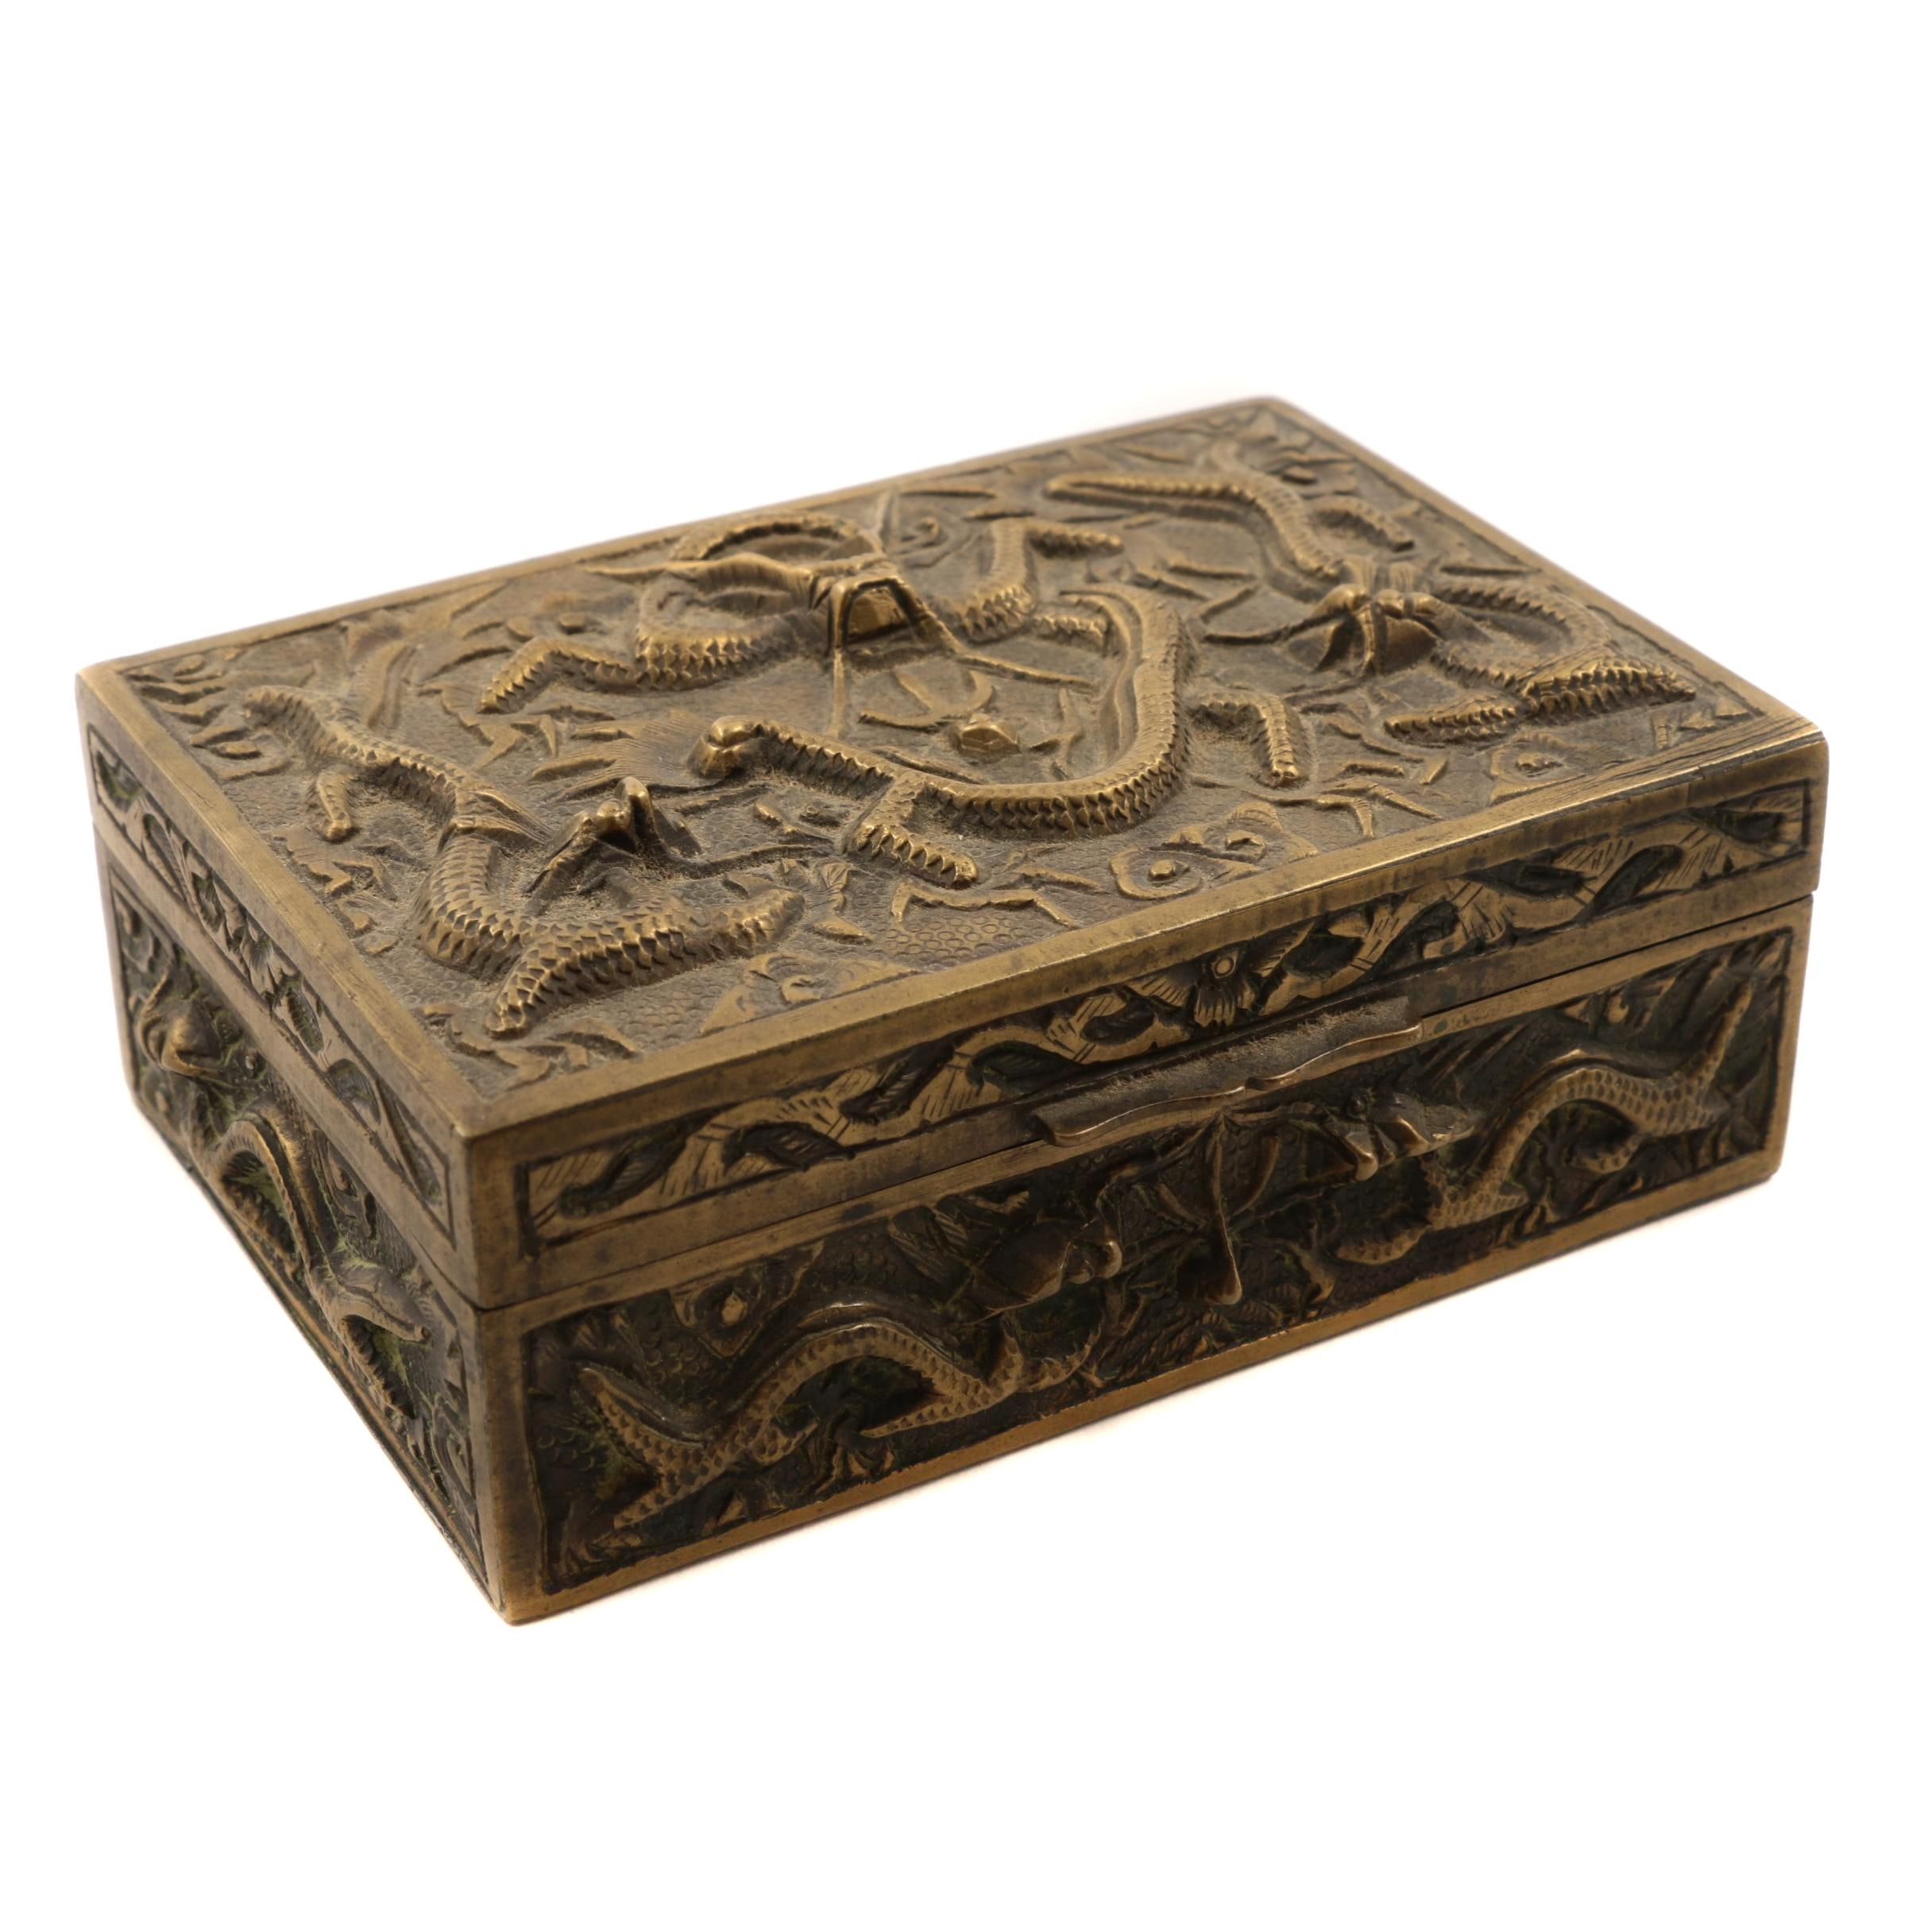 Vintage Brass Box With Asian Motif